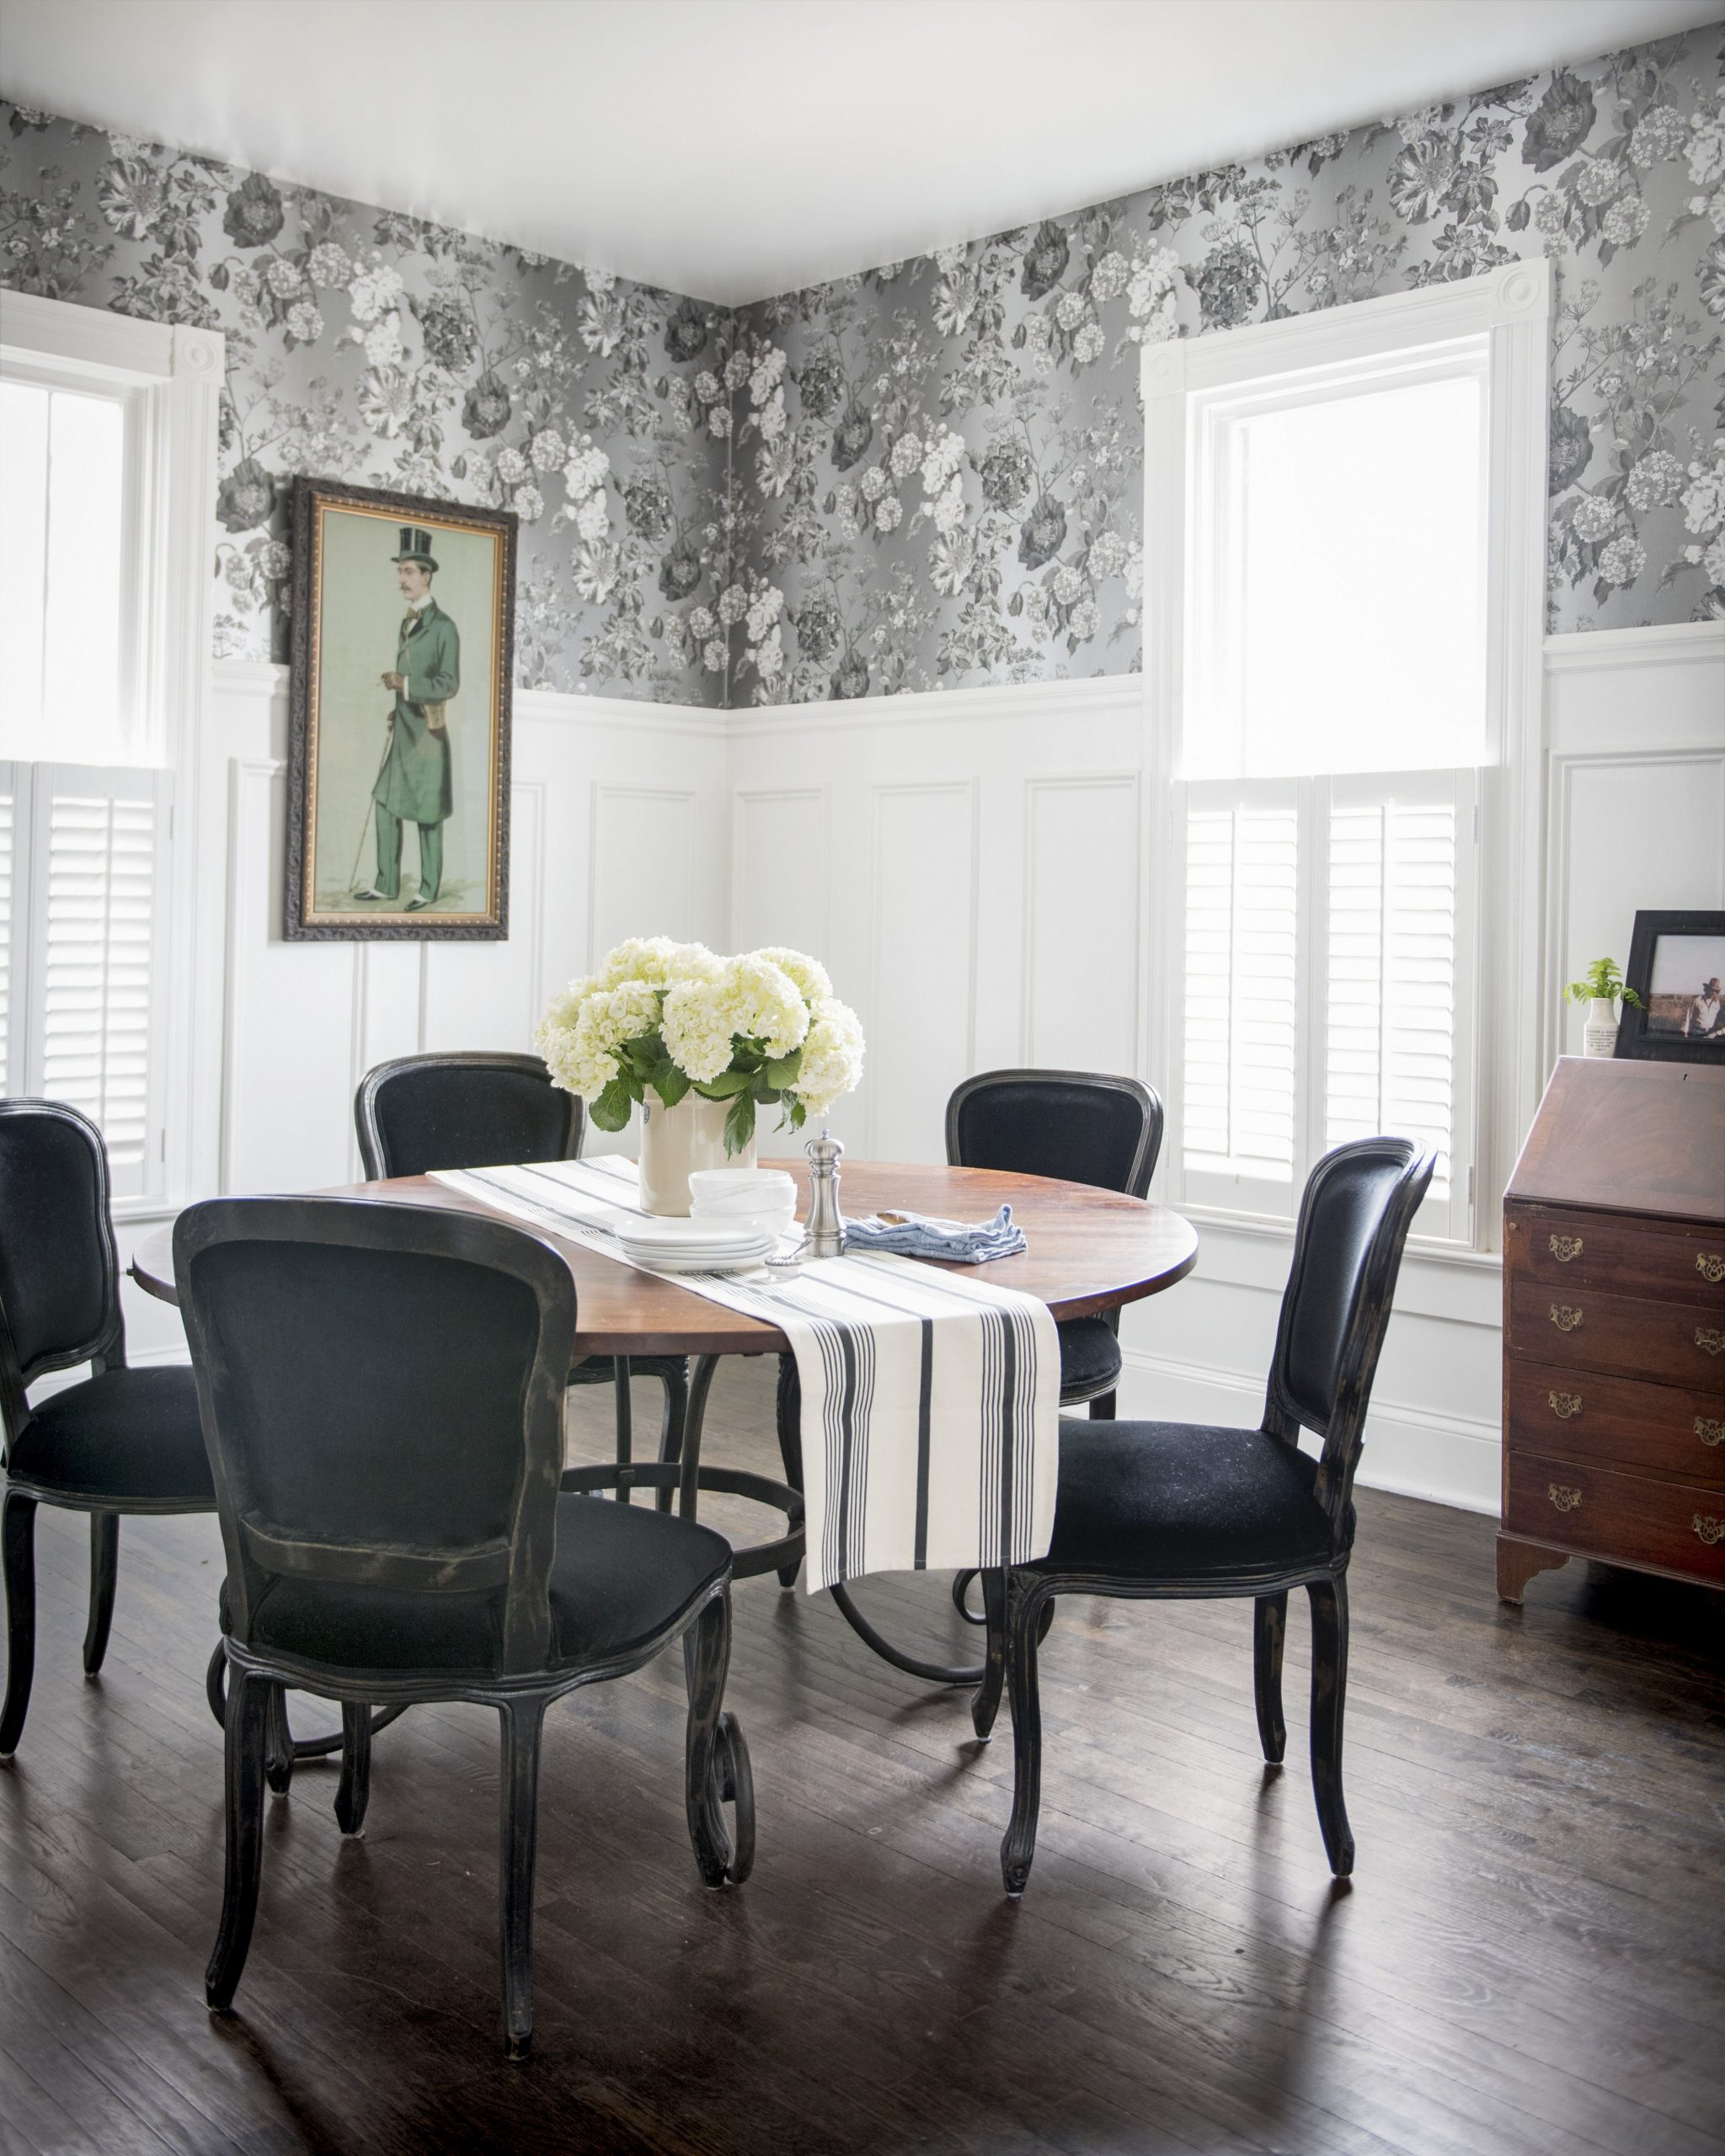 8 Best Dining Room Decorating Ideas - Pictures of Dining Room Decor - Dining Room Ideas Gallery